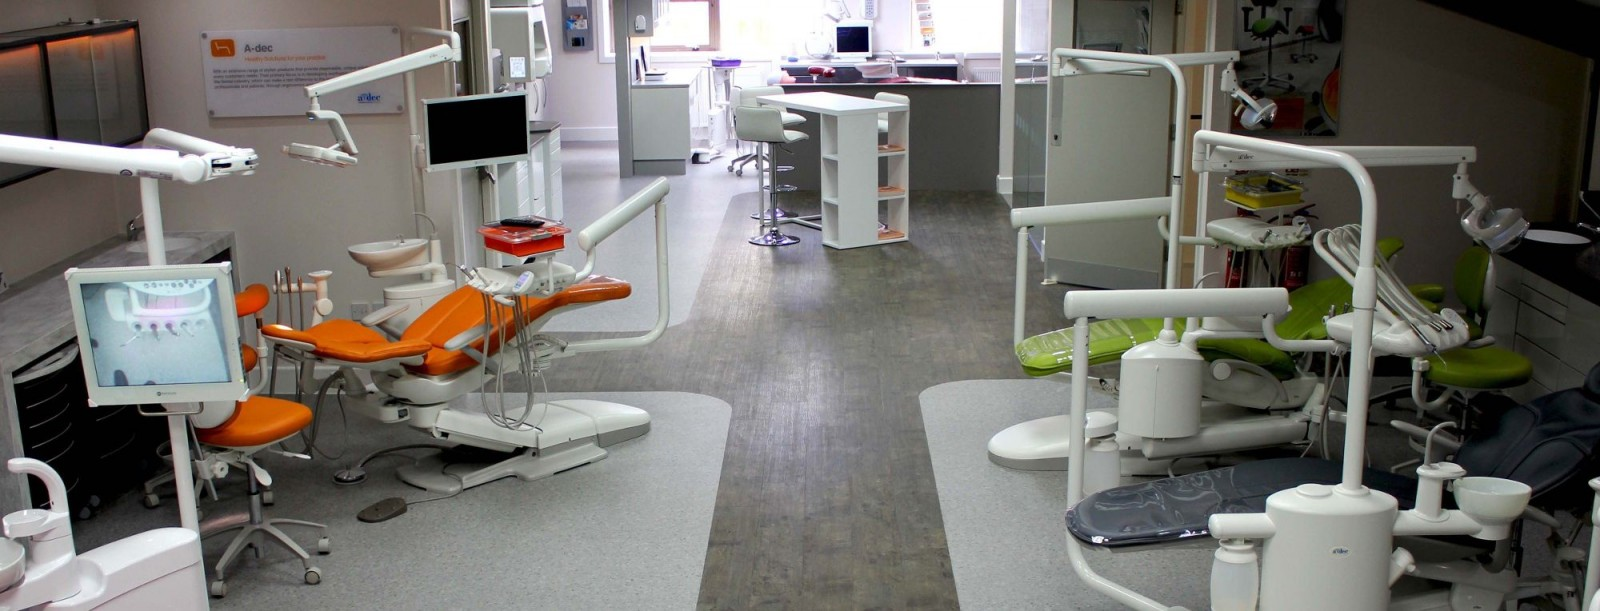 The Hague Dental Equipment Showroom